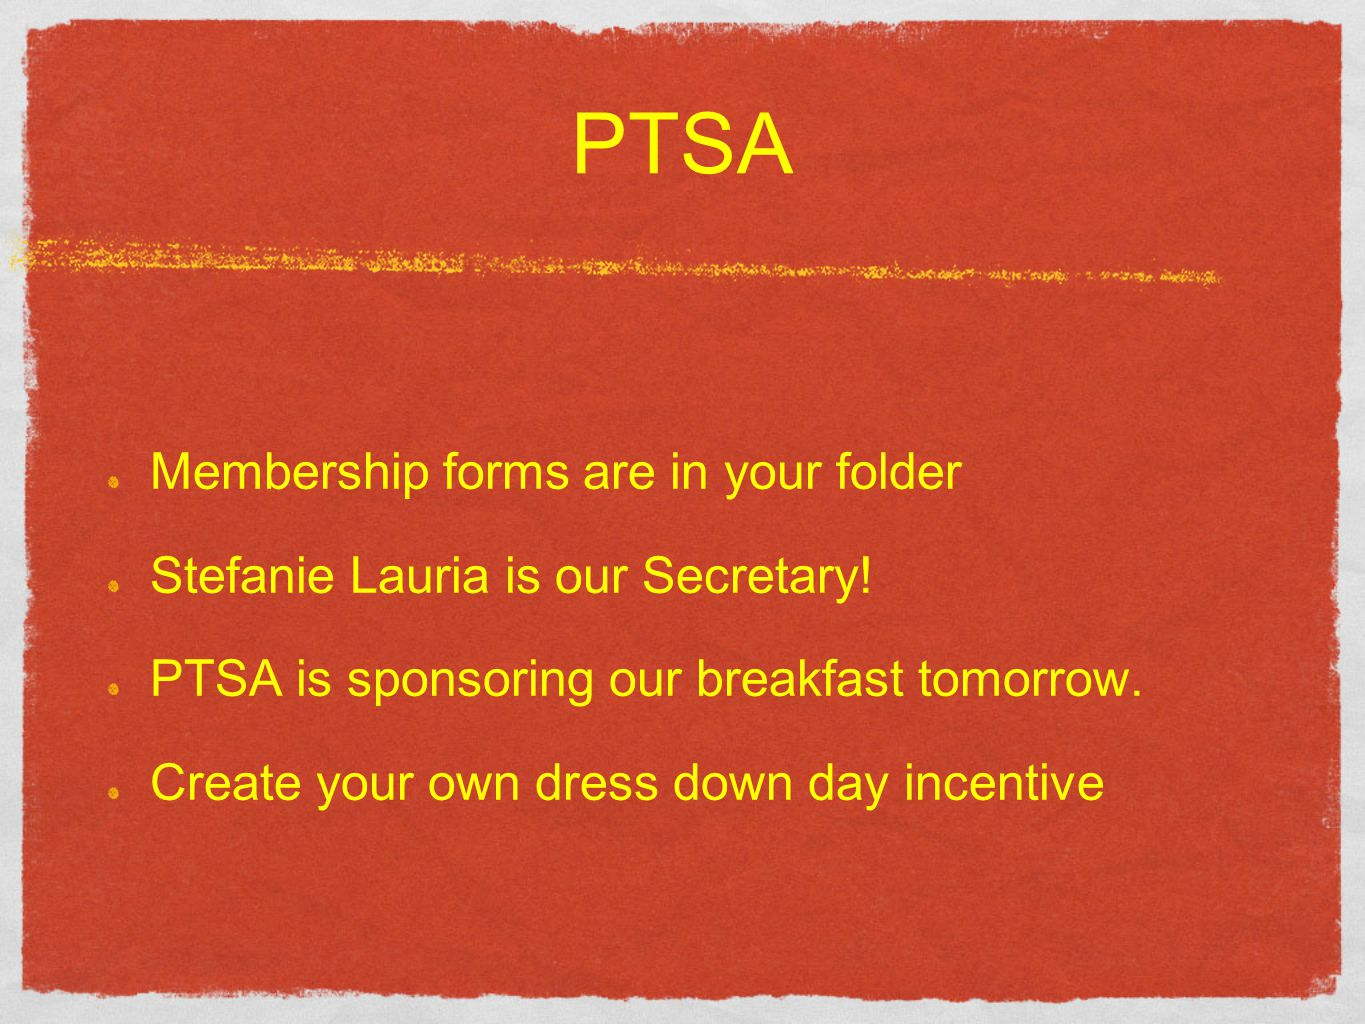 PTSA Membership forms are in your folder Stefanie Lauria is our Secretary.